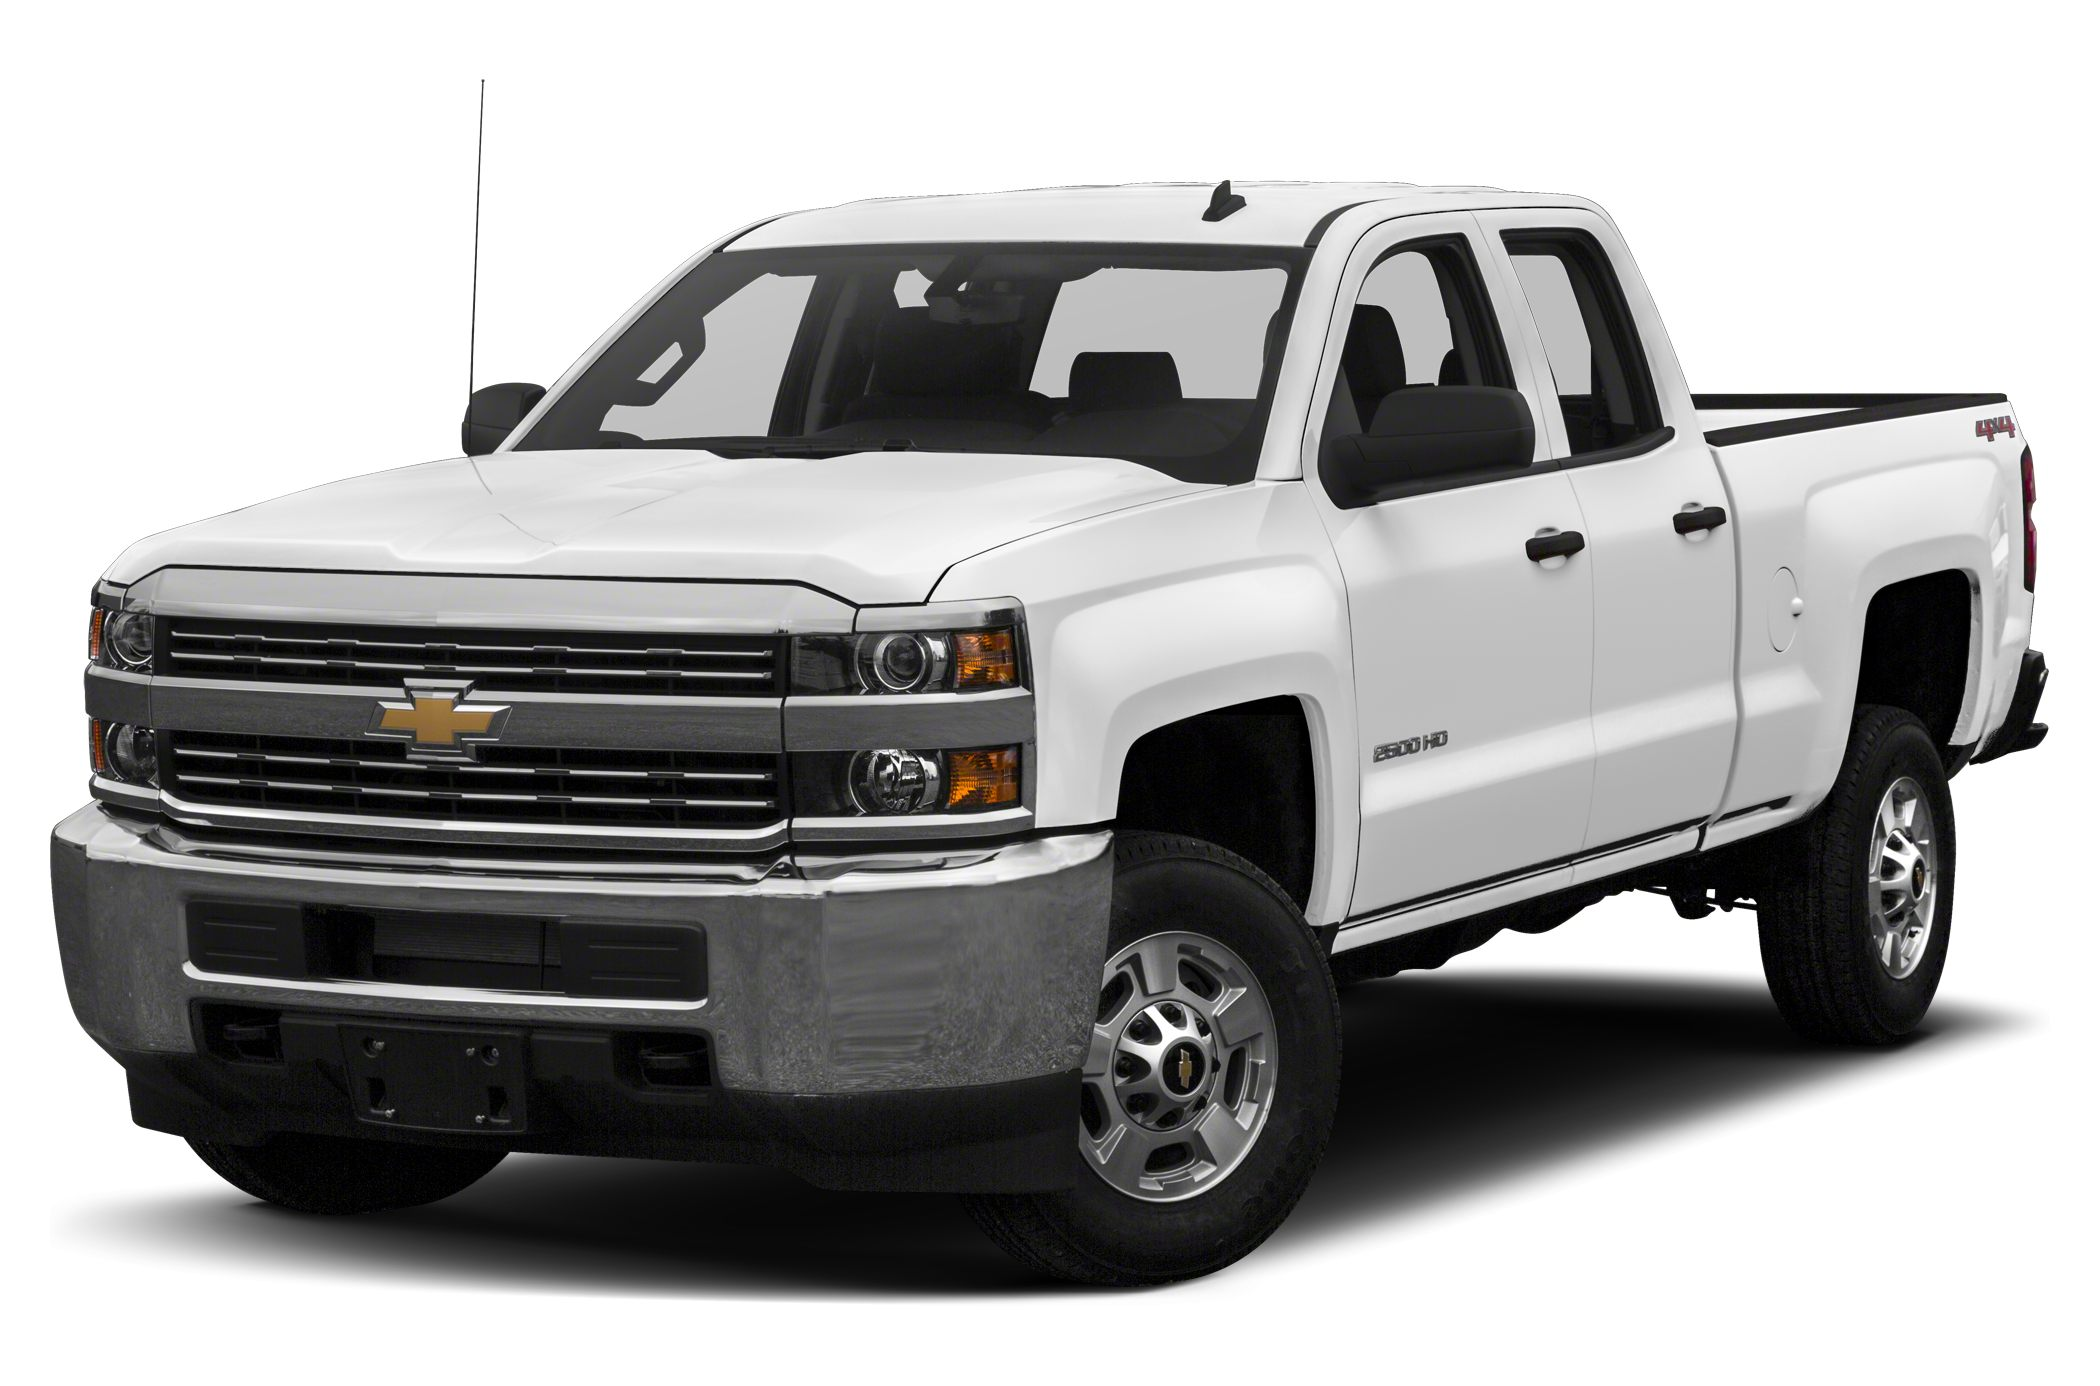 2015 Chevrolet Silverado 2500 LT Crew Cab Pickup for sale in Springfield for $48,435 with 0 miles